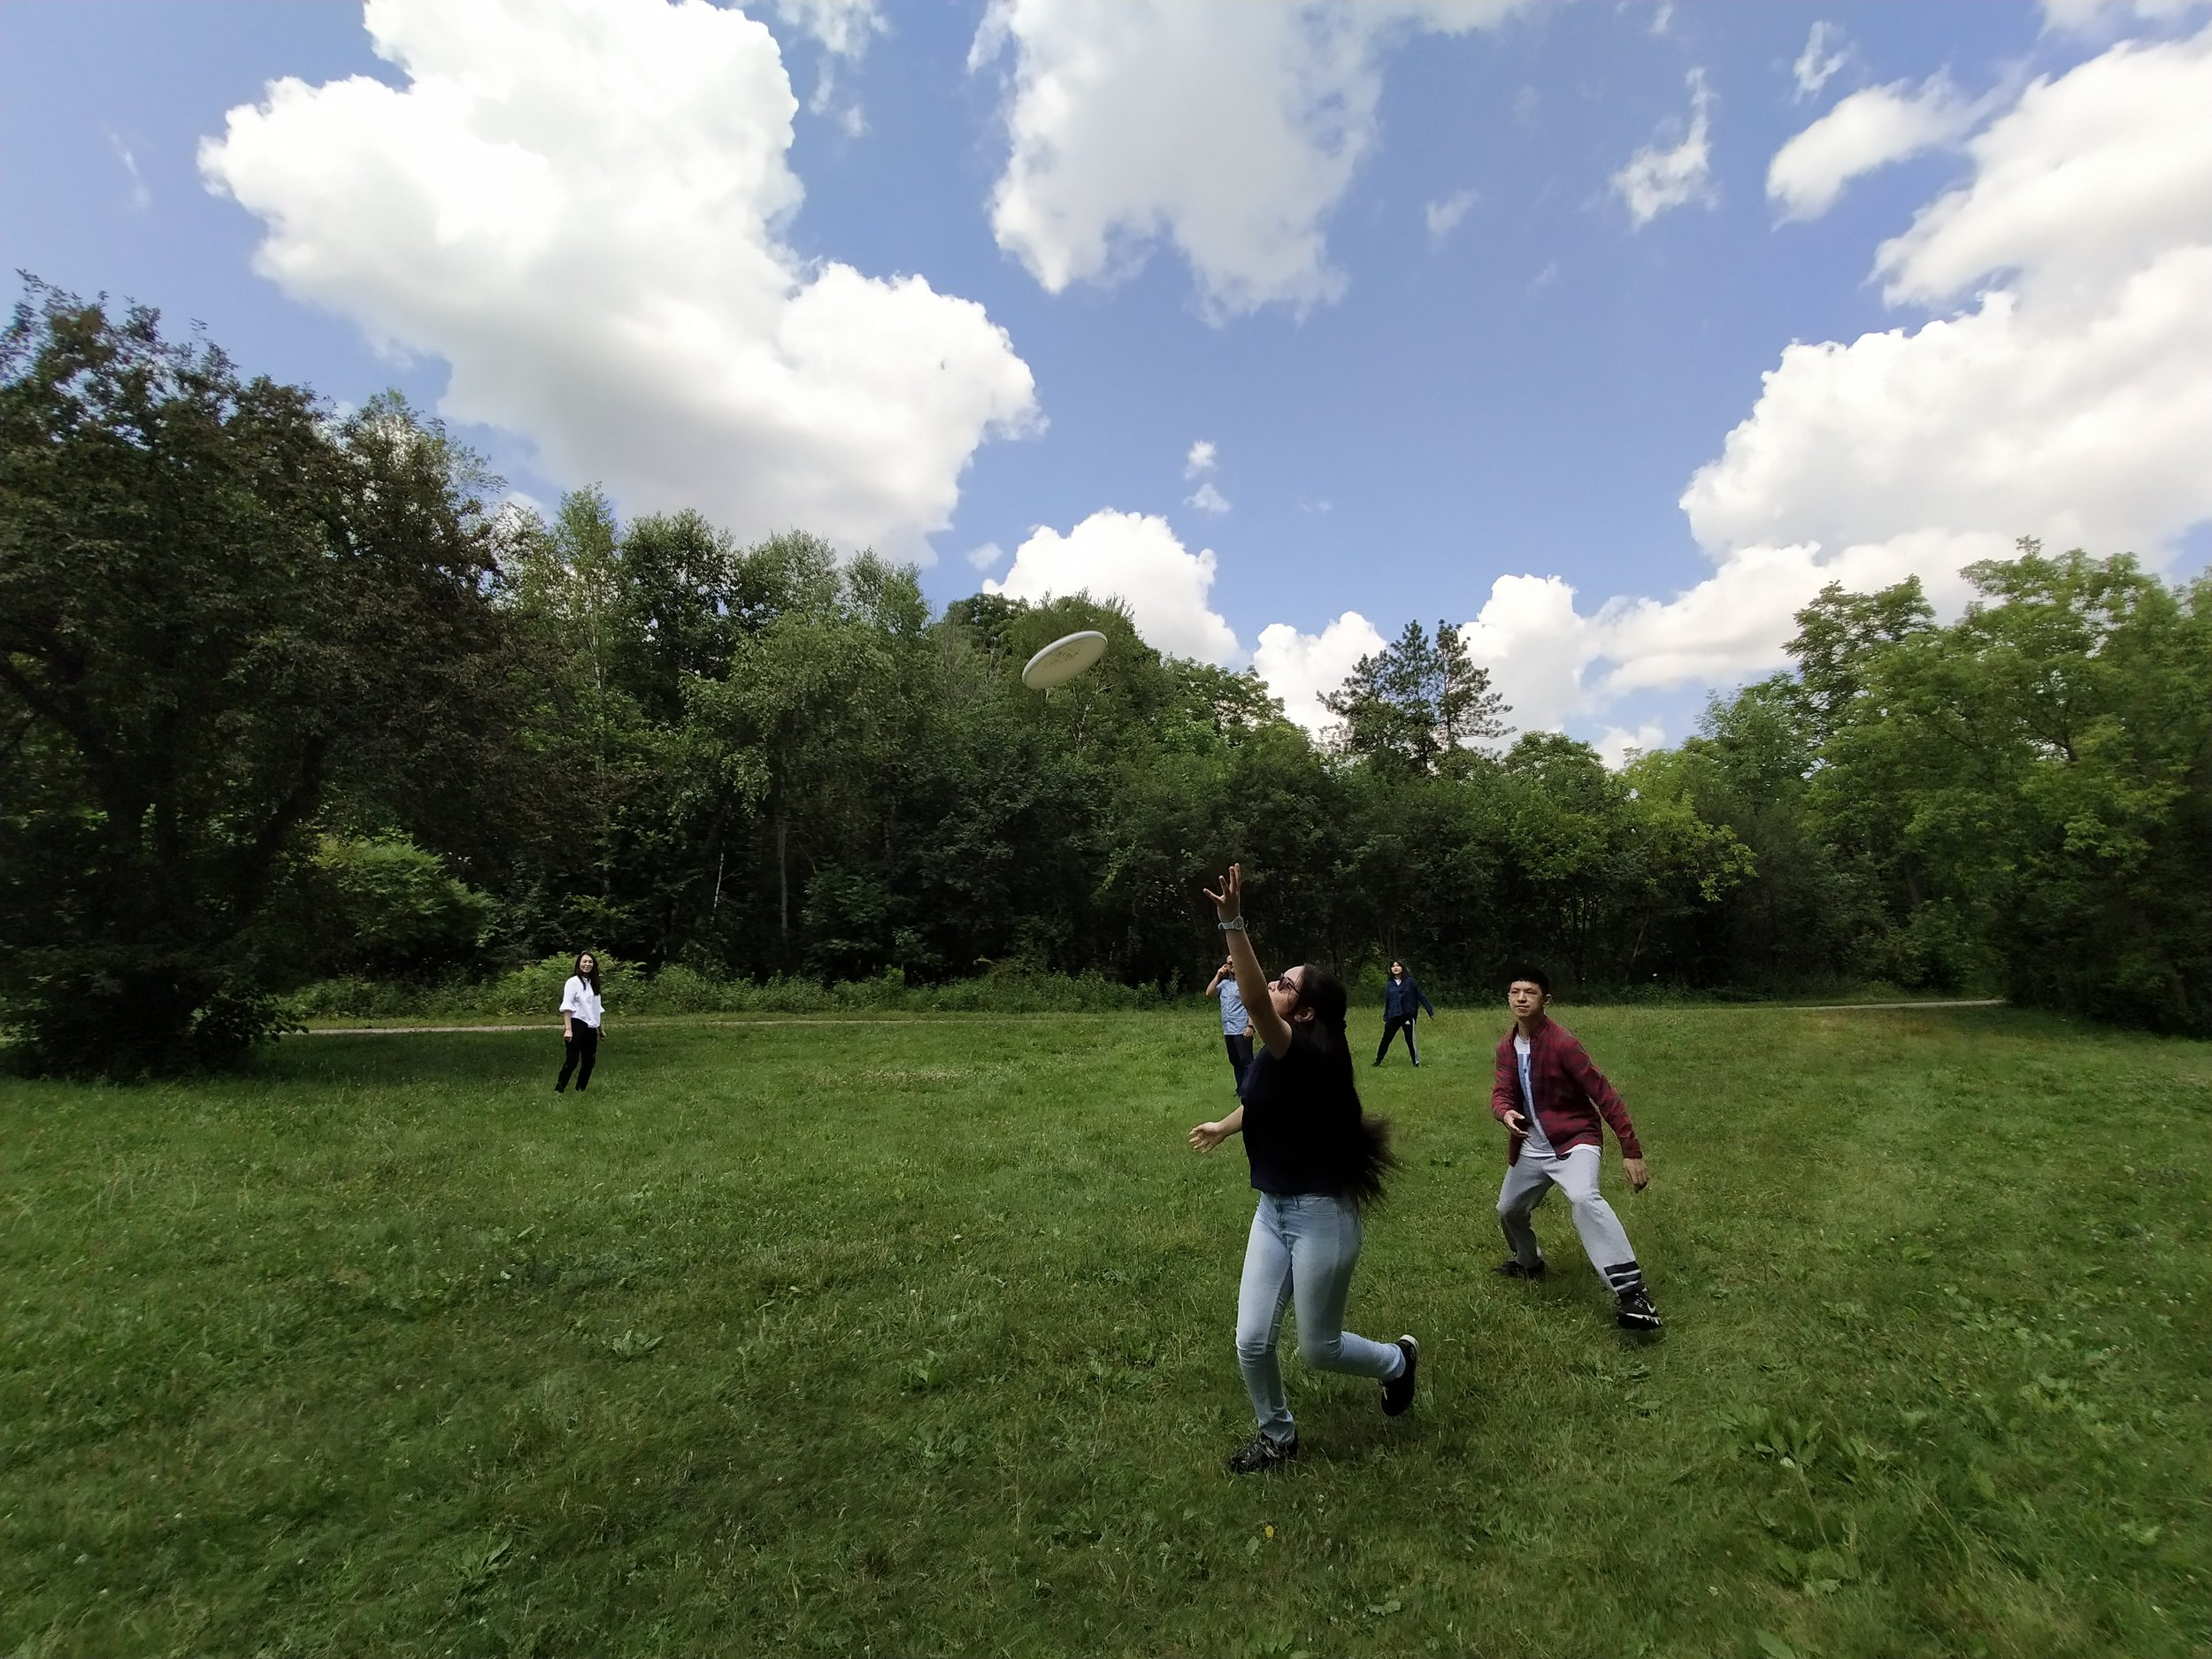 playing frisby.jpg